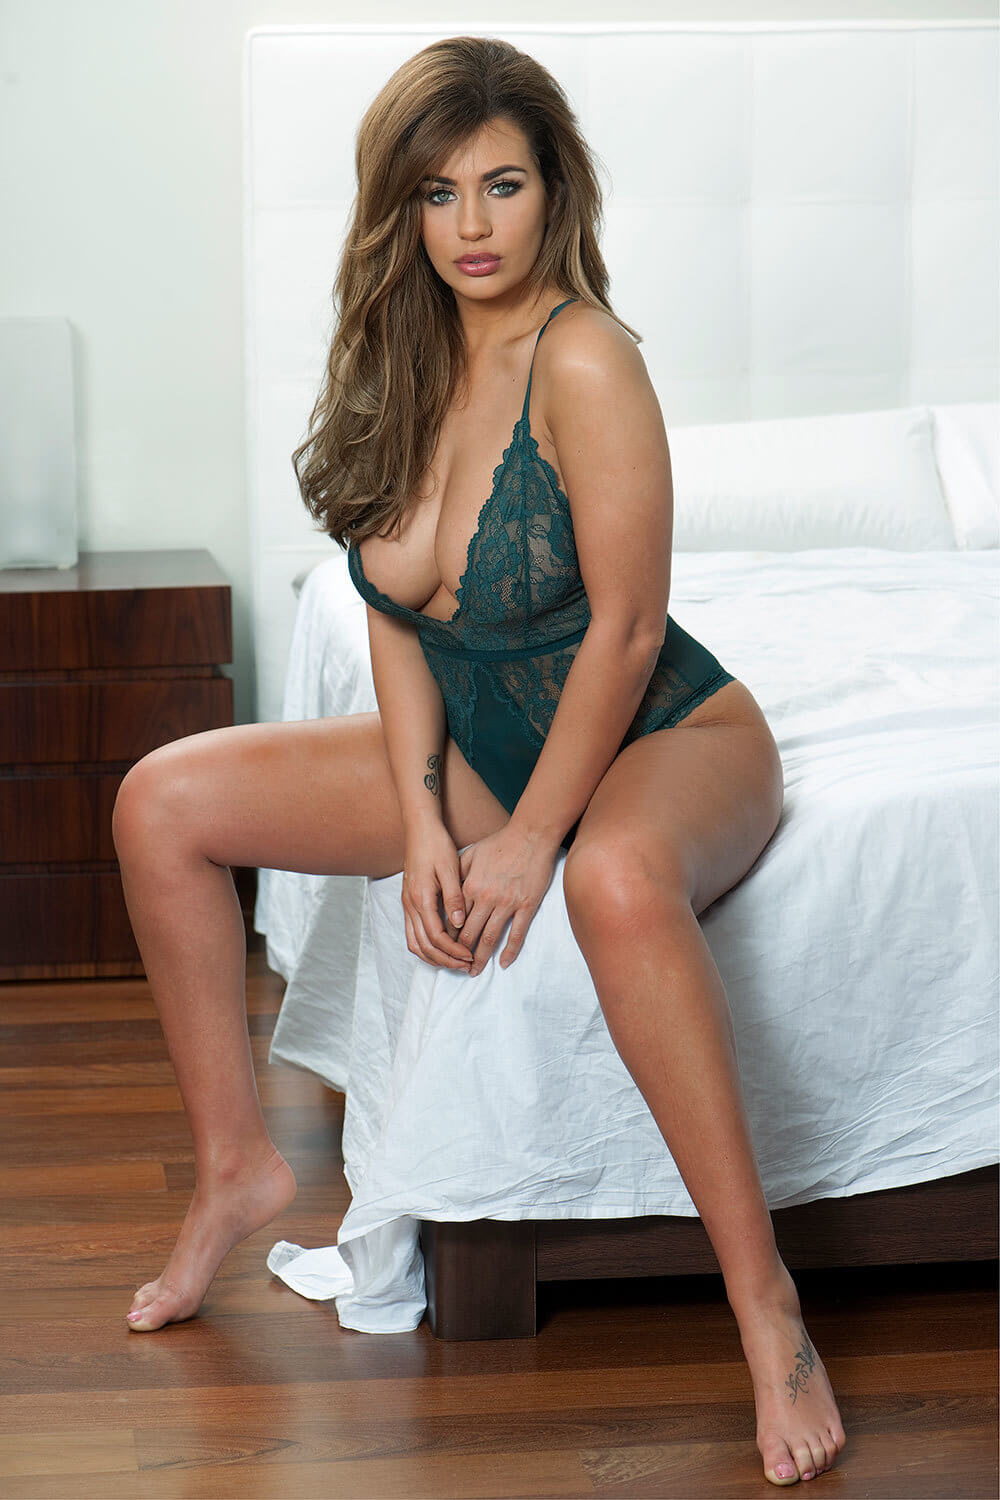 Holly Peers legs awesome pic